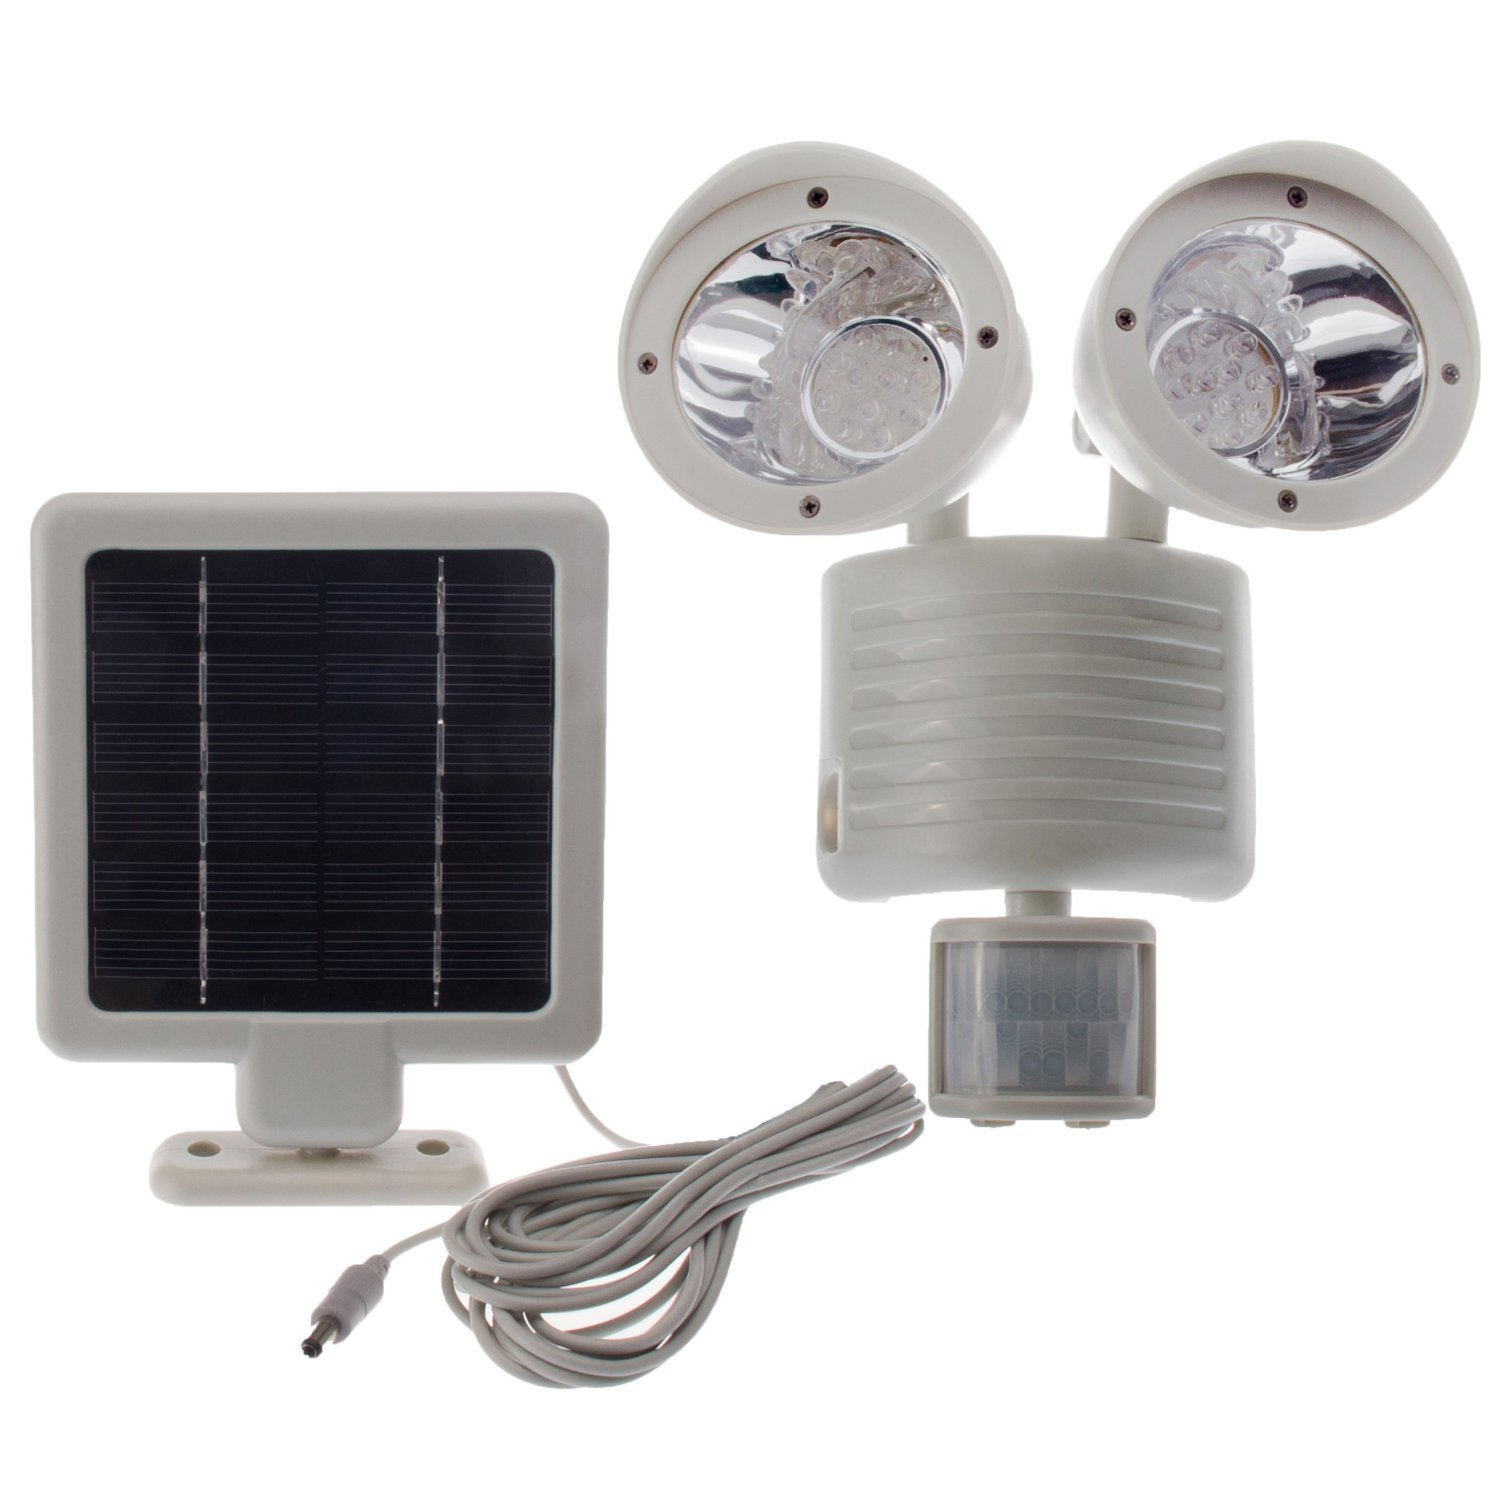 Solar Garage Outside Lights: Solar Powered Motion Sensor Light 22 LED Garage Outdoor